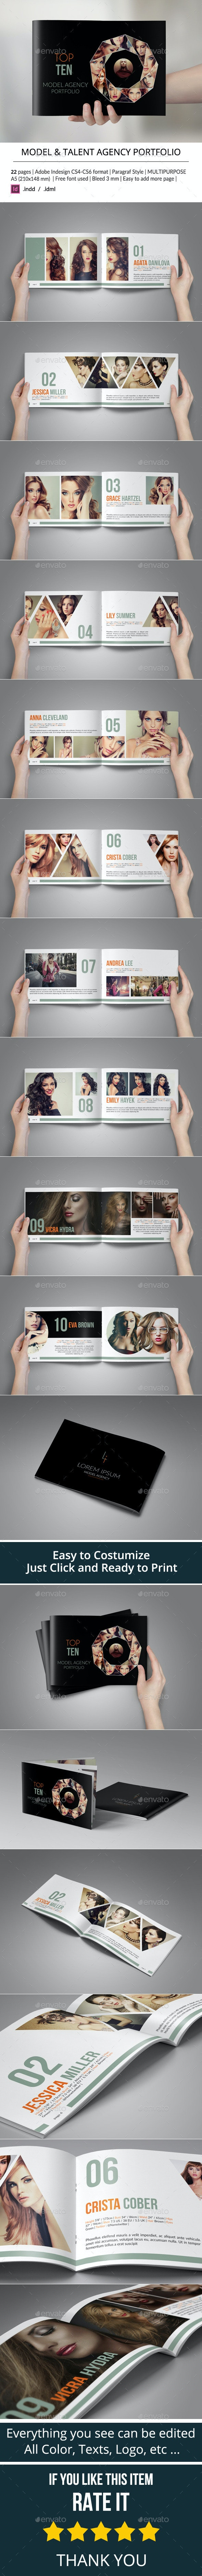 Model Agency Catalogs or Portfolio Template - Portfolio Brochures